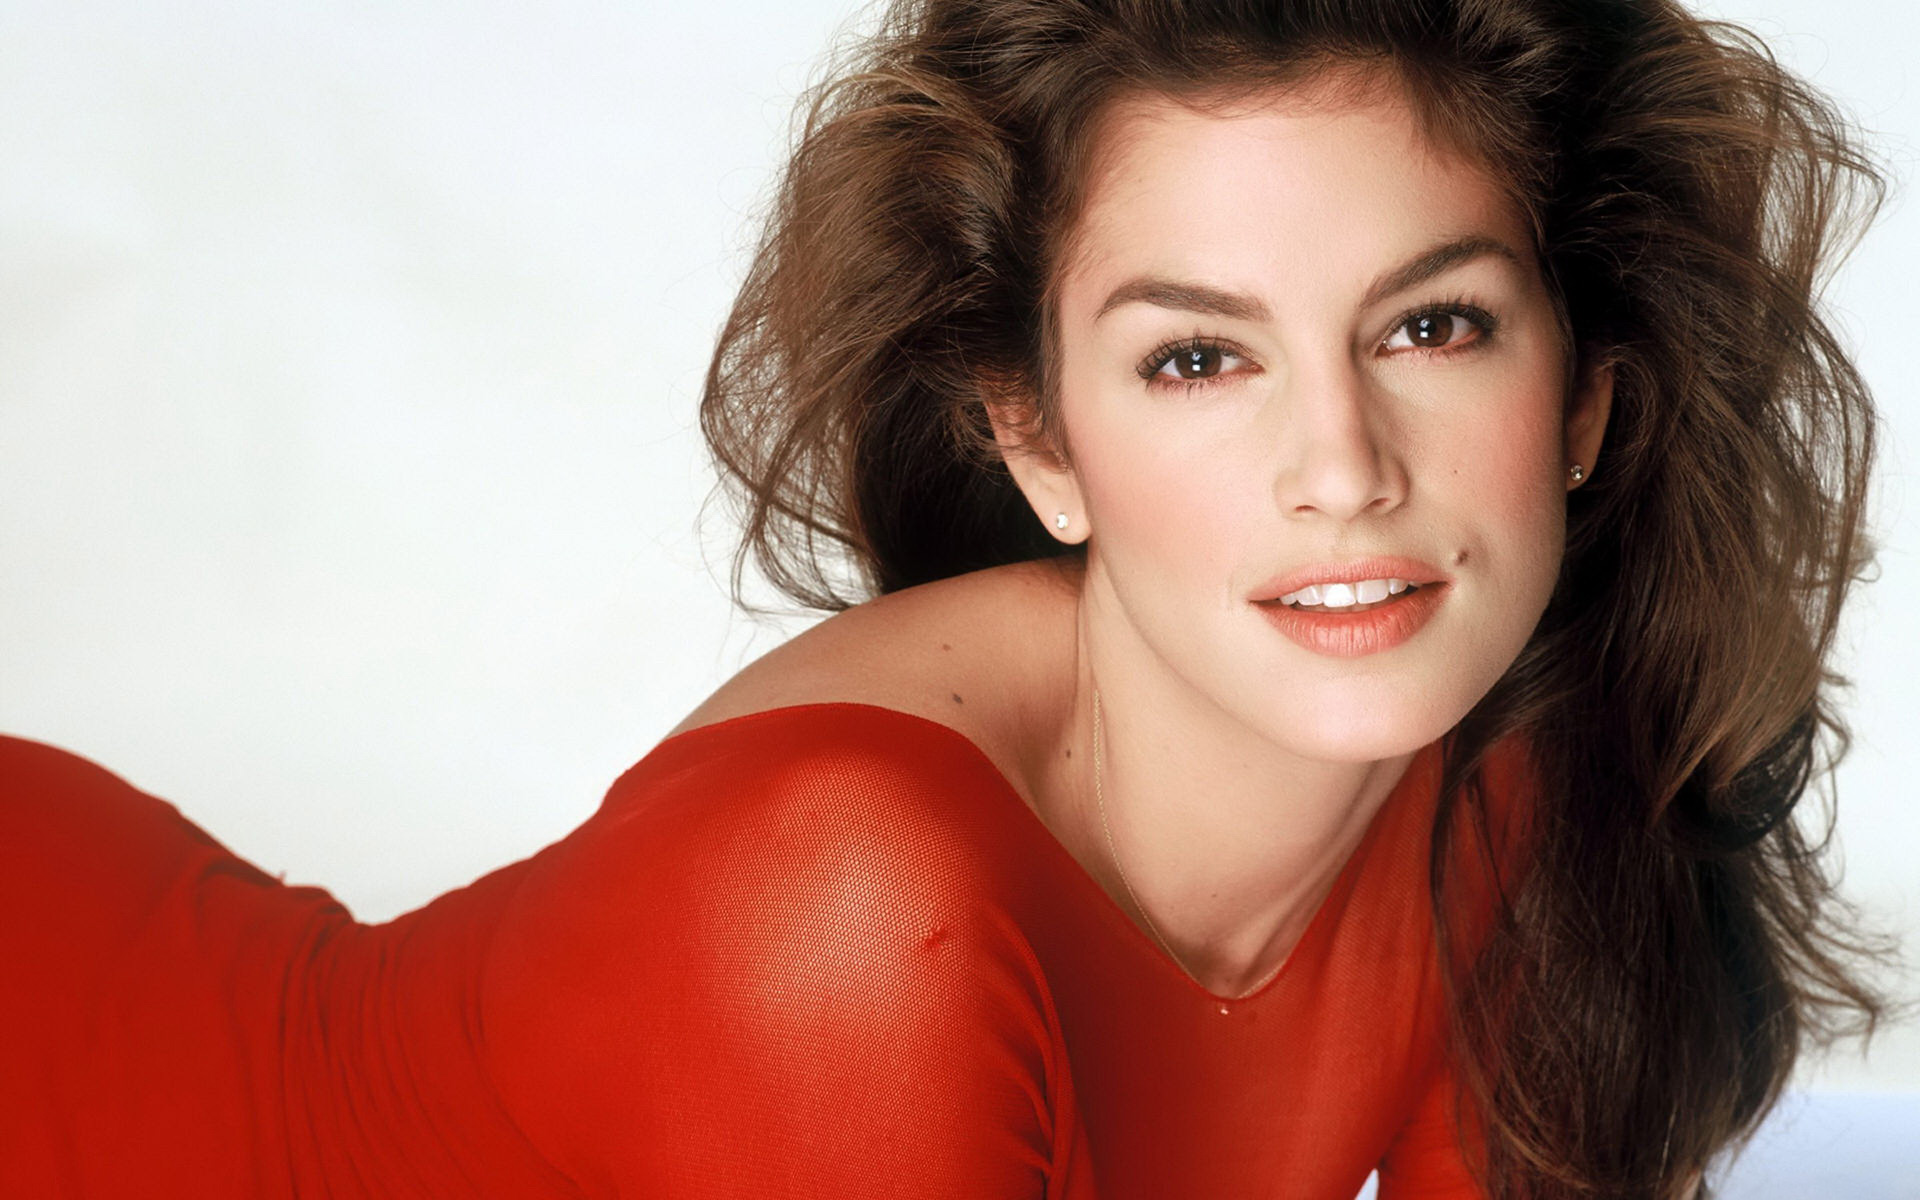 cindy-crawford-beauty-hd-wallpaper